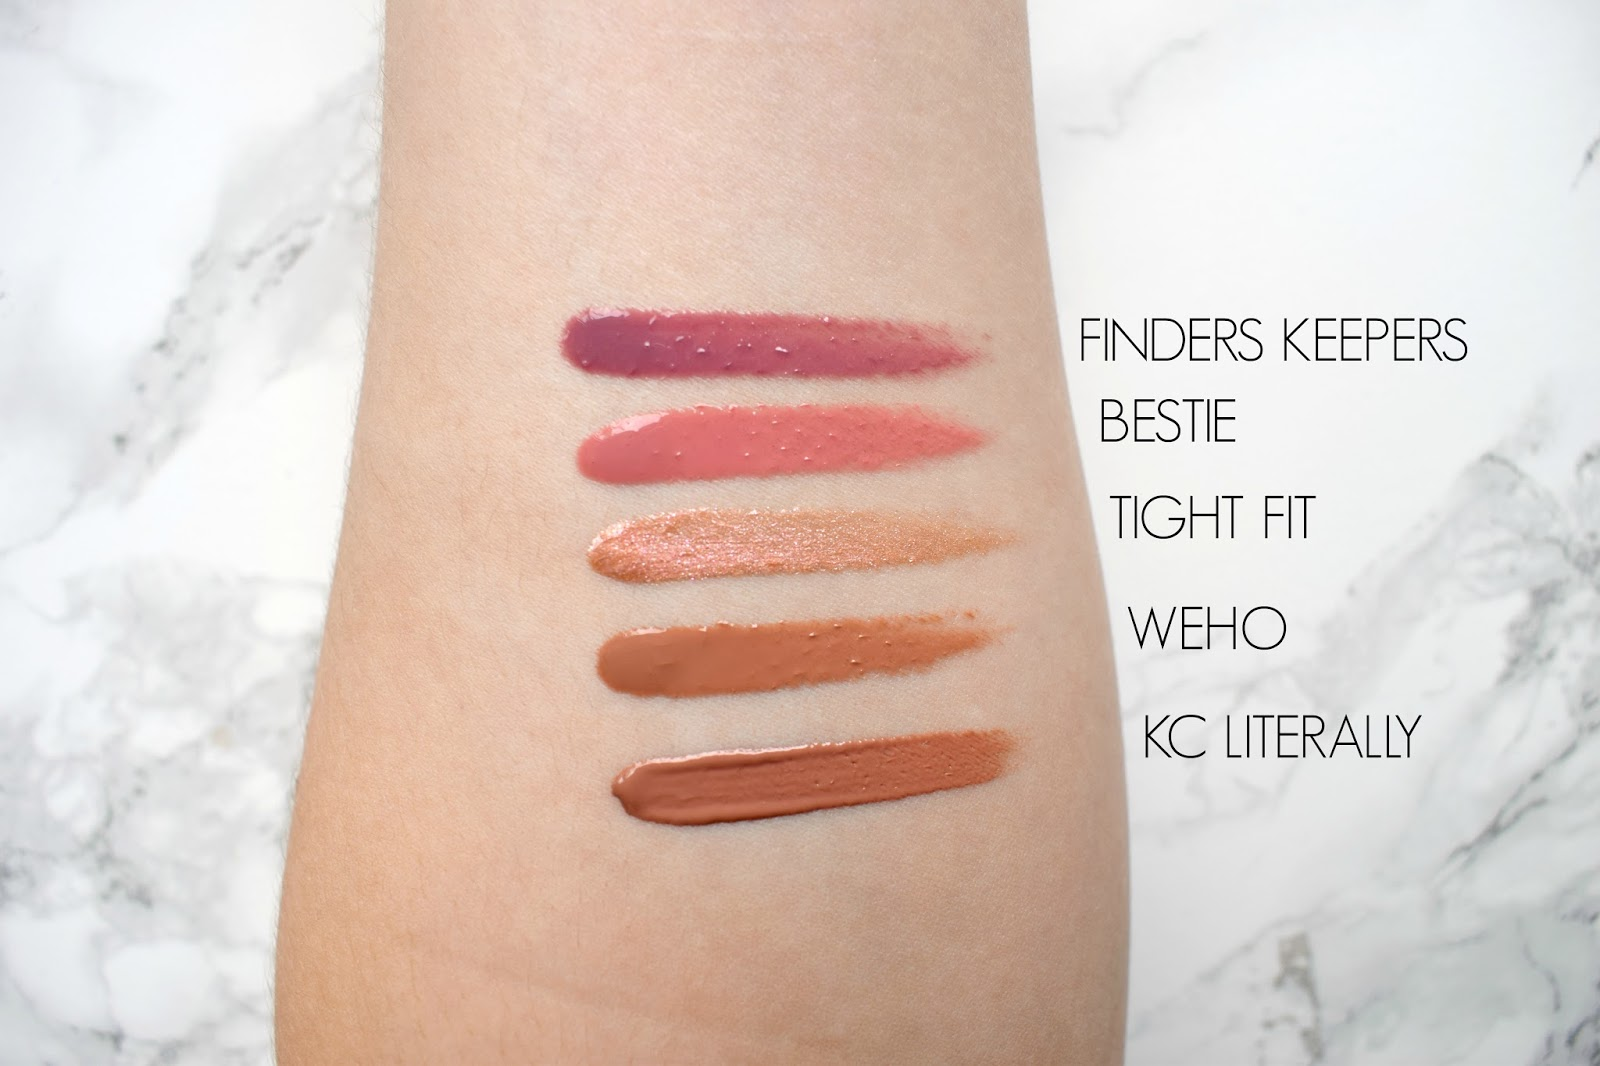 KYLIE JENNER AND COLOURPOP LIP GLOSS REVIEW, SWATCHES, ULTRA GLOSSY LIP SWATCHES, kylie vs colourpop lip gloss, ultra glossy lip review, colourpop uk